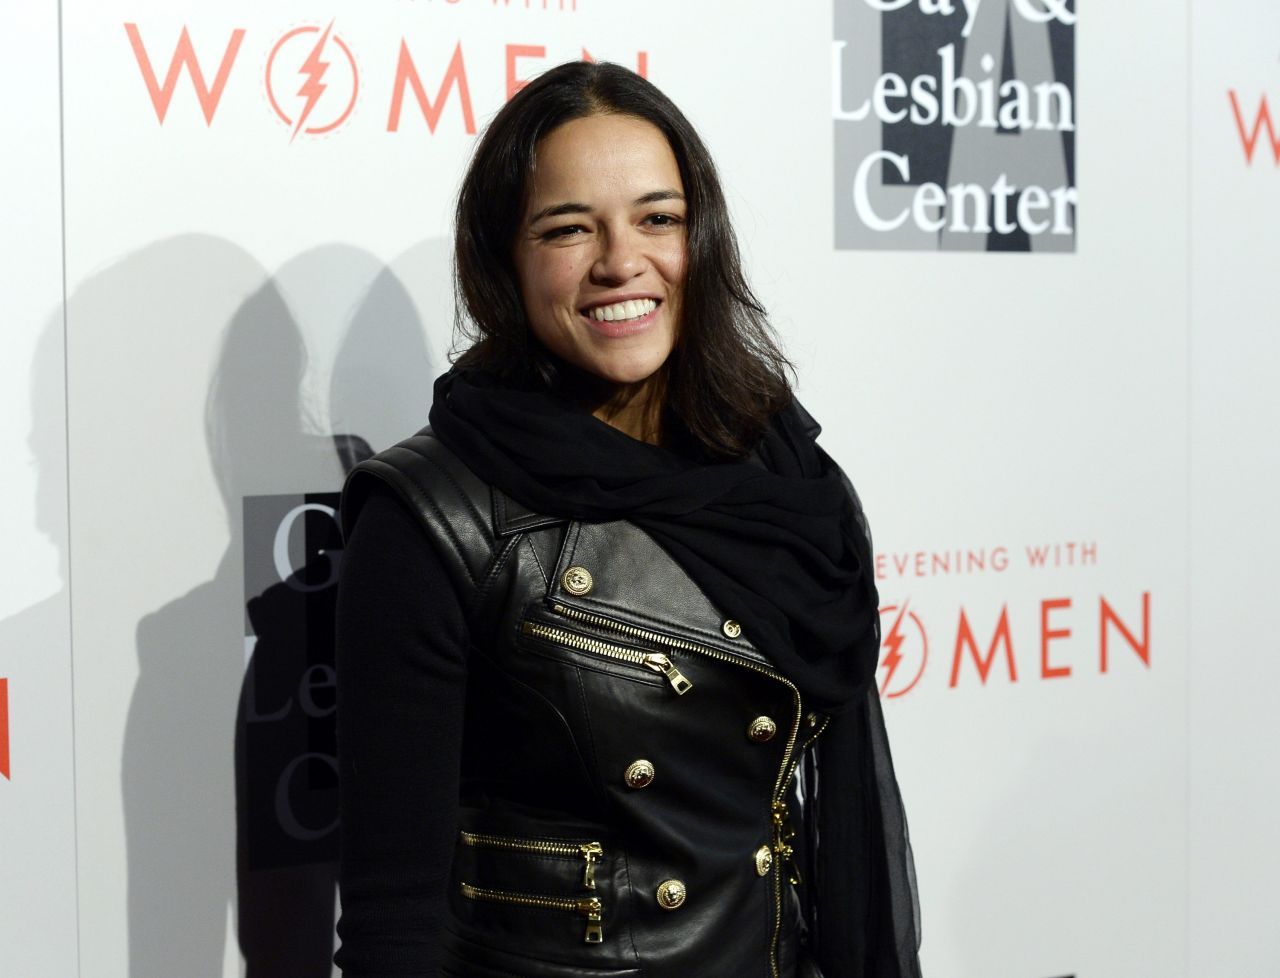 Michelle Rodriguez - An Evening With Women - May 2014